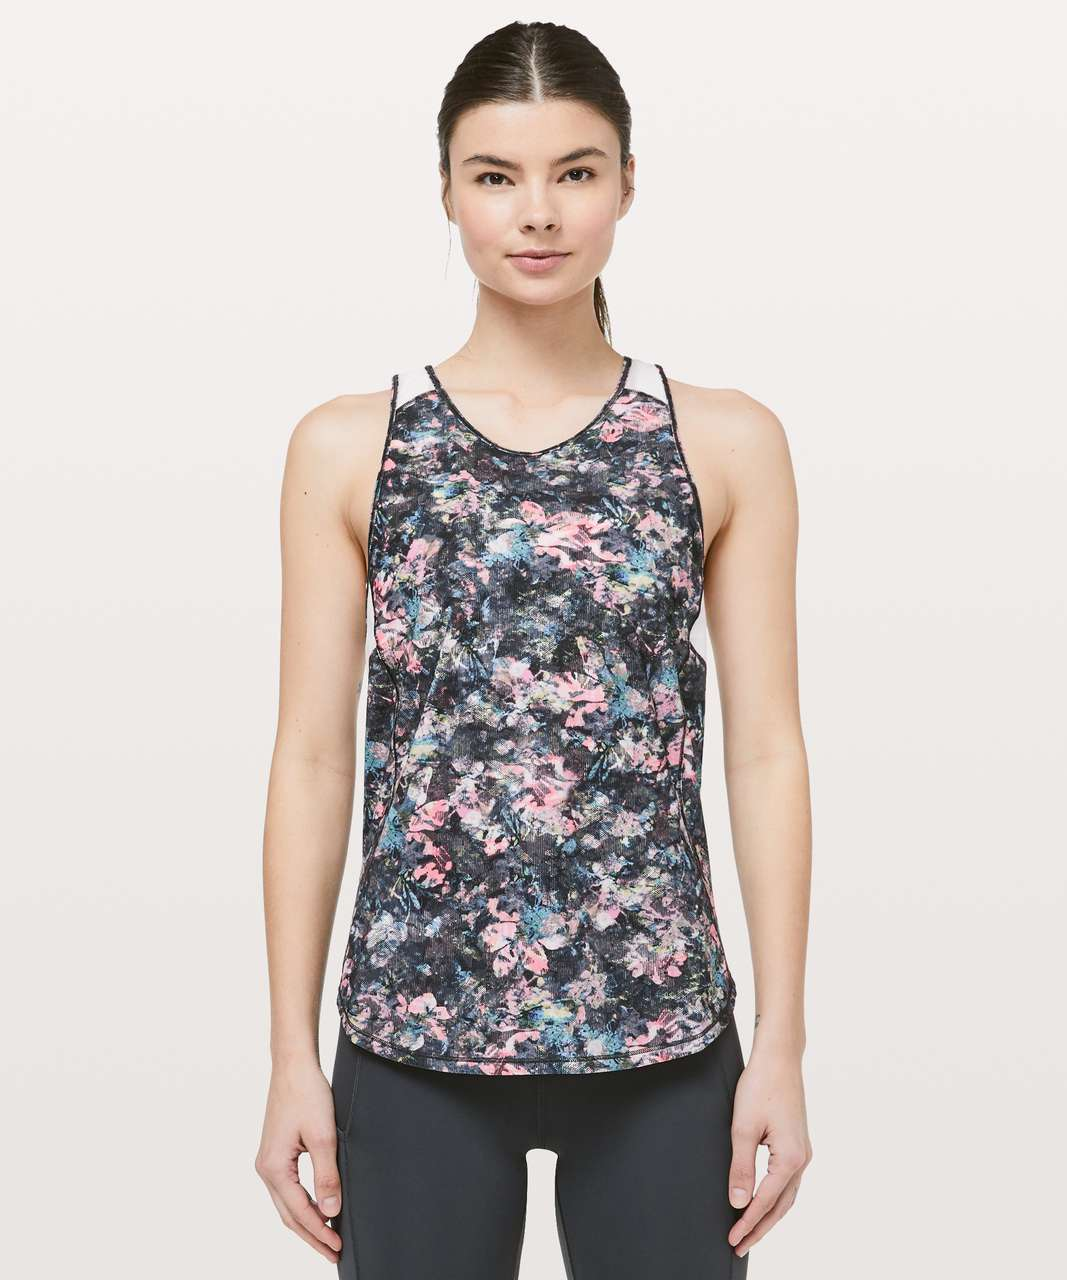 Lululemon Sculpt Tank II - Dappled Daze Multi